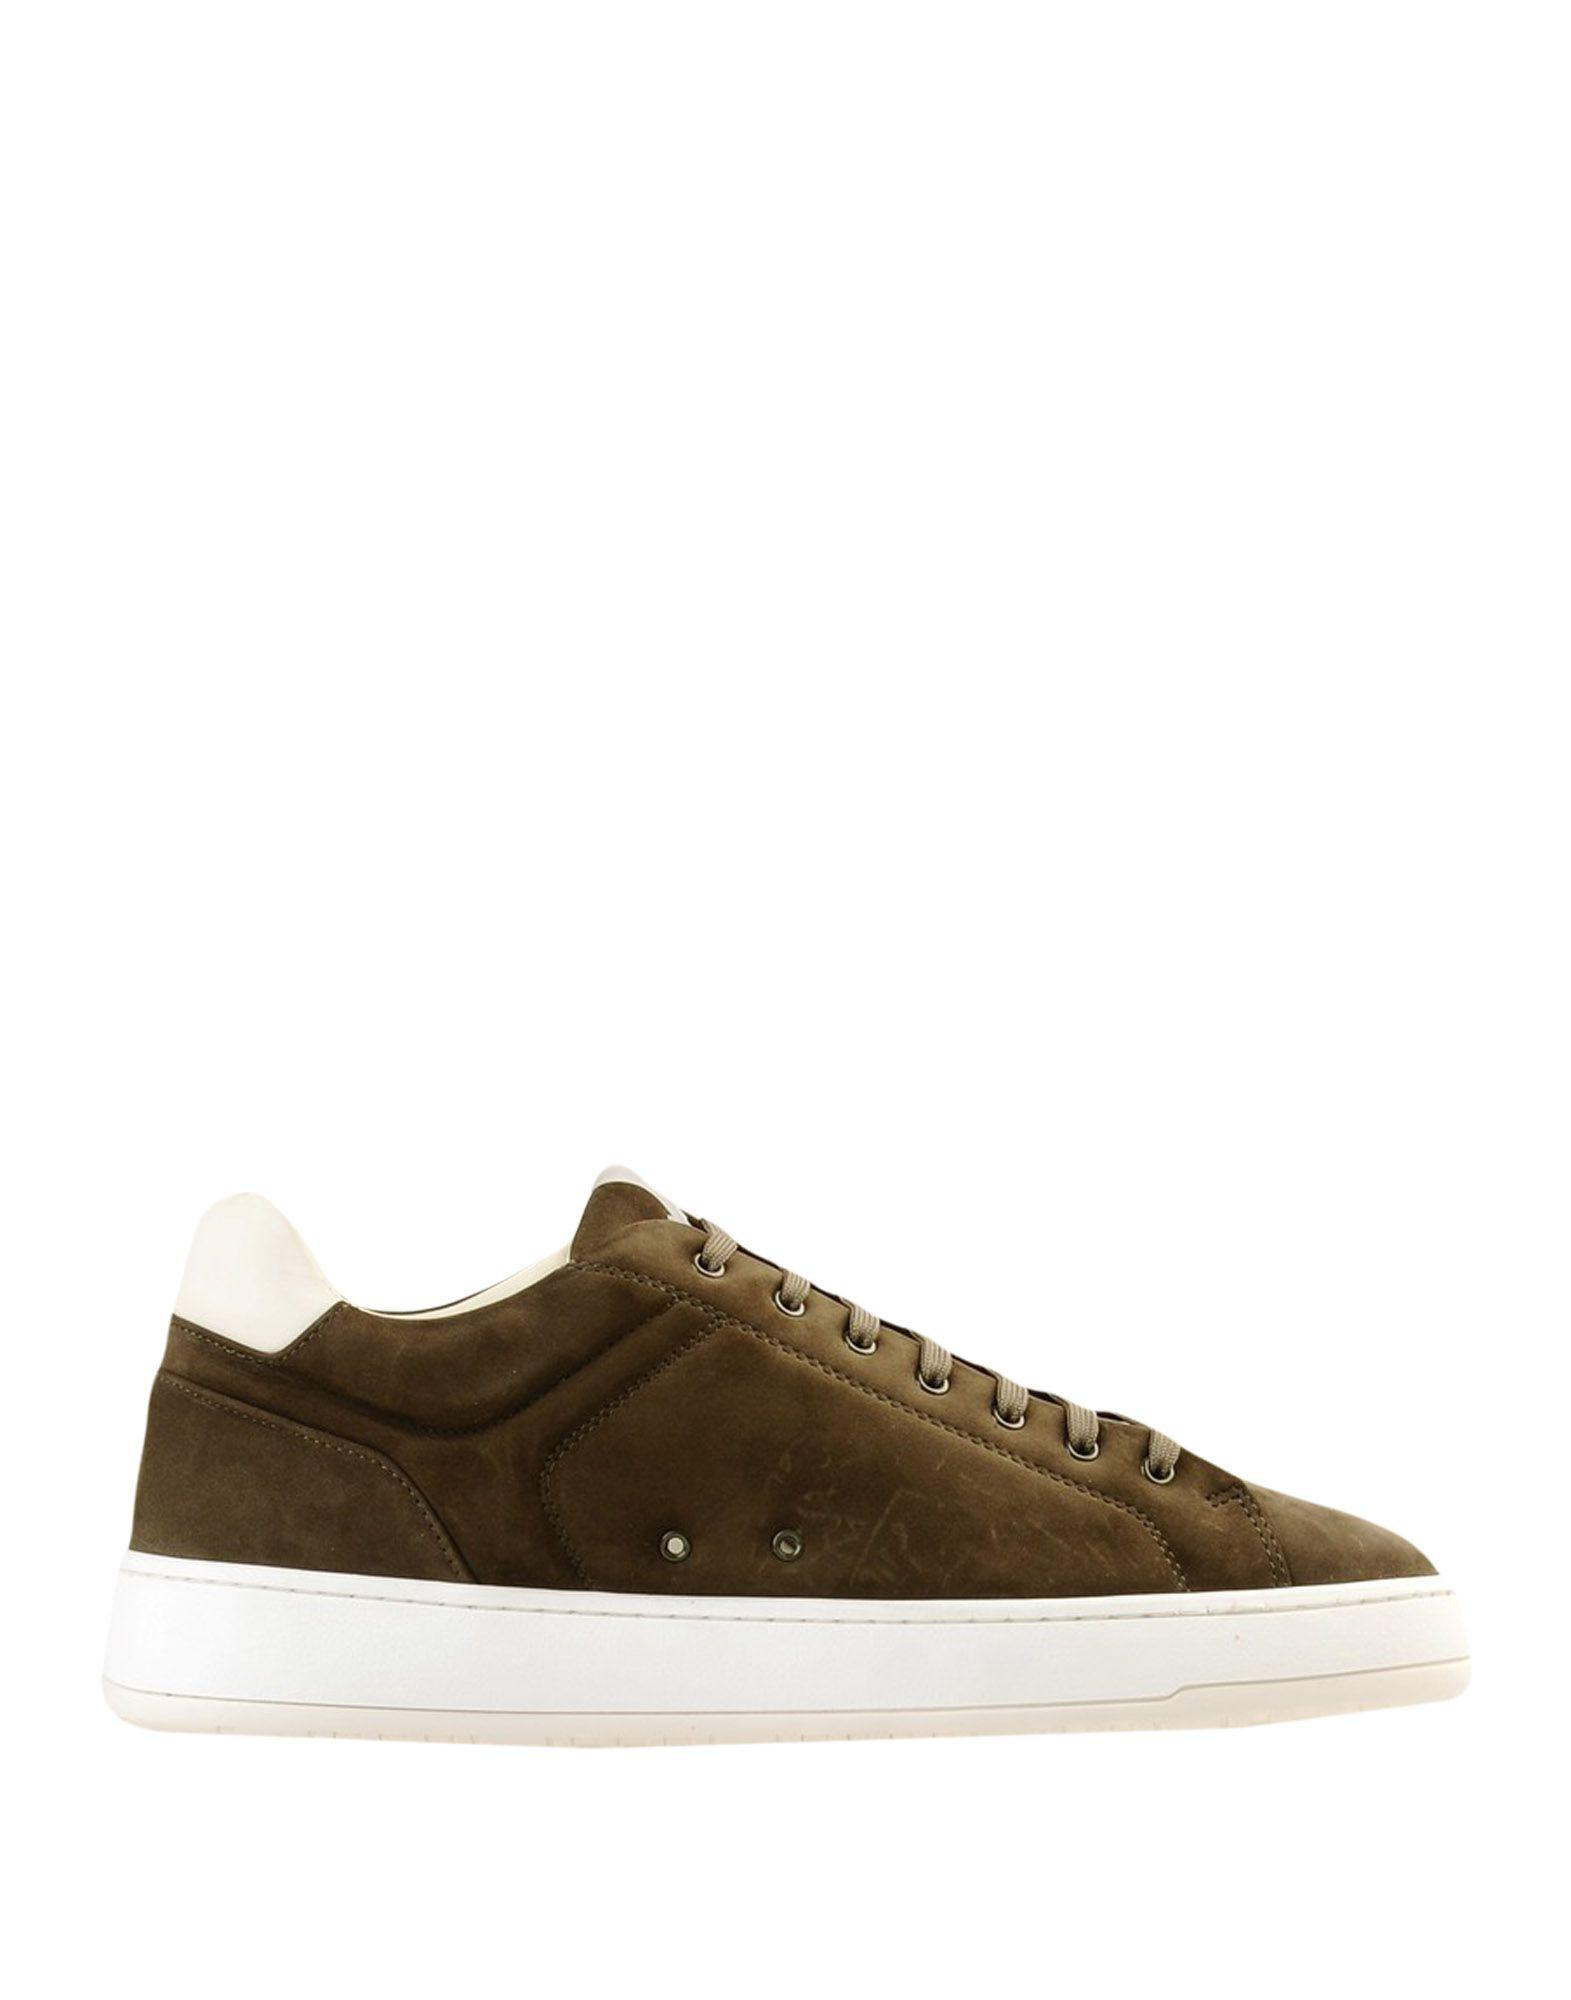 Lyst - ETQ Amsterdam Low-tops   Sneakers in Green for Men 524a8d42b